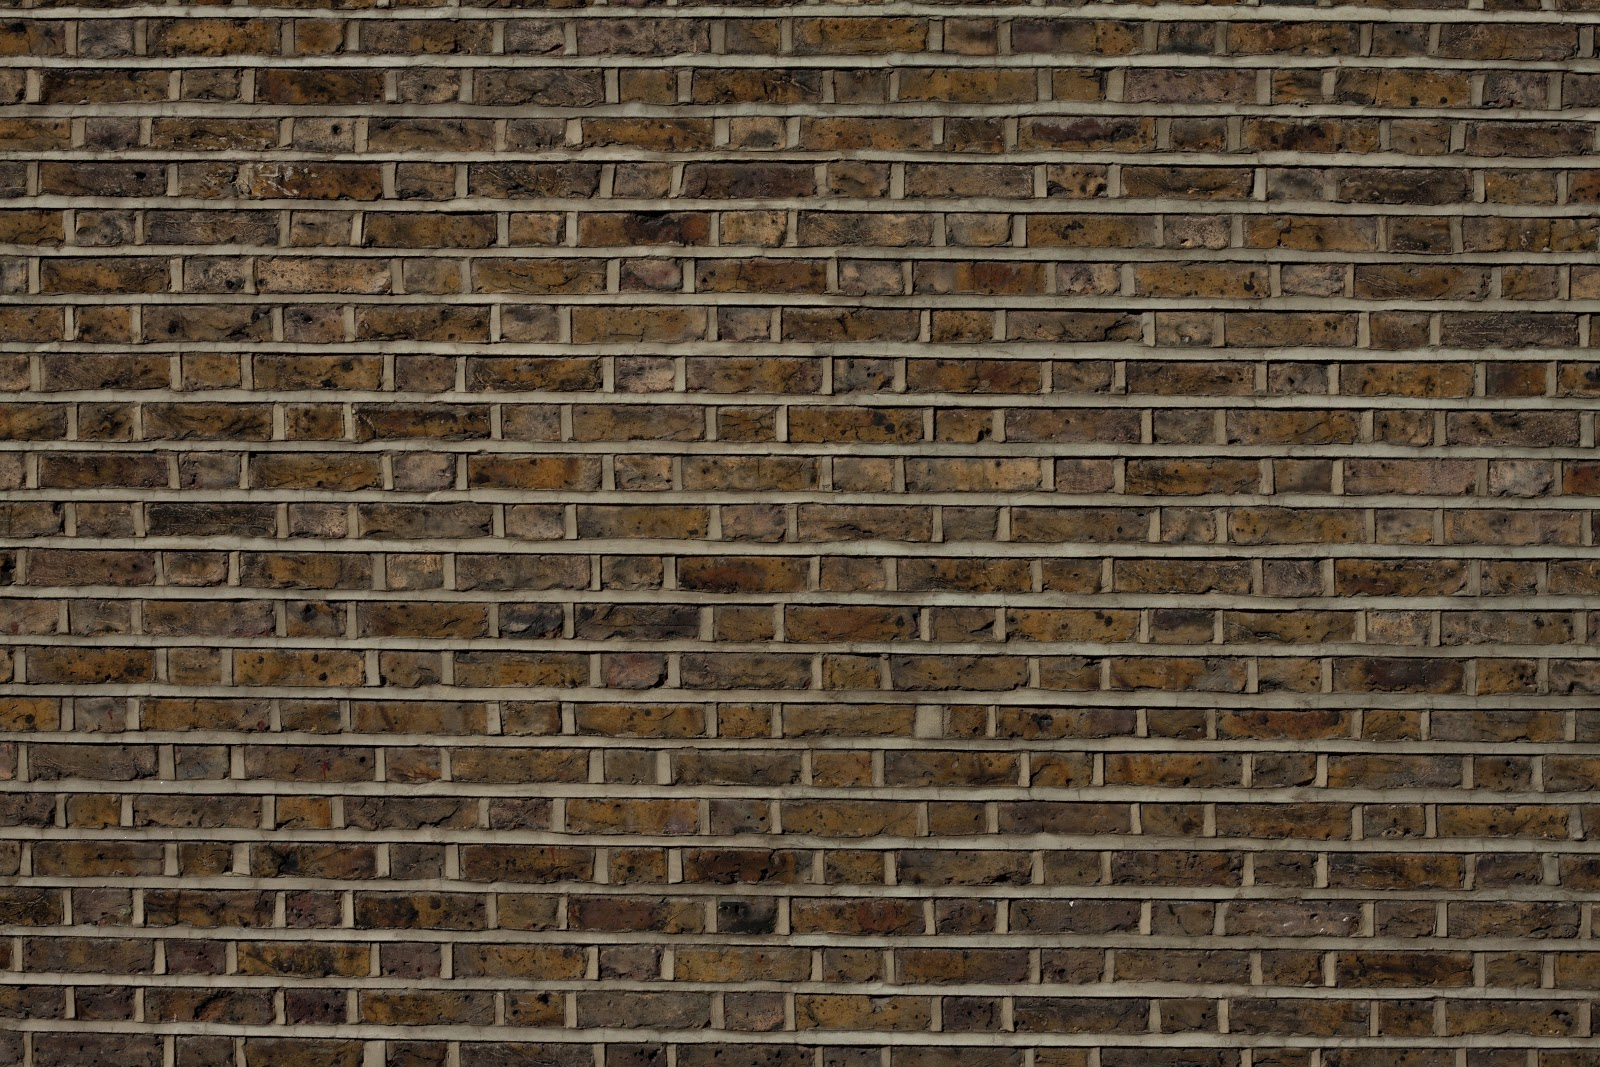 Cool indented brick 4752x3168